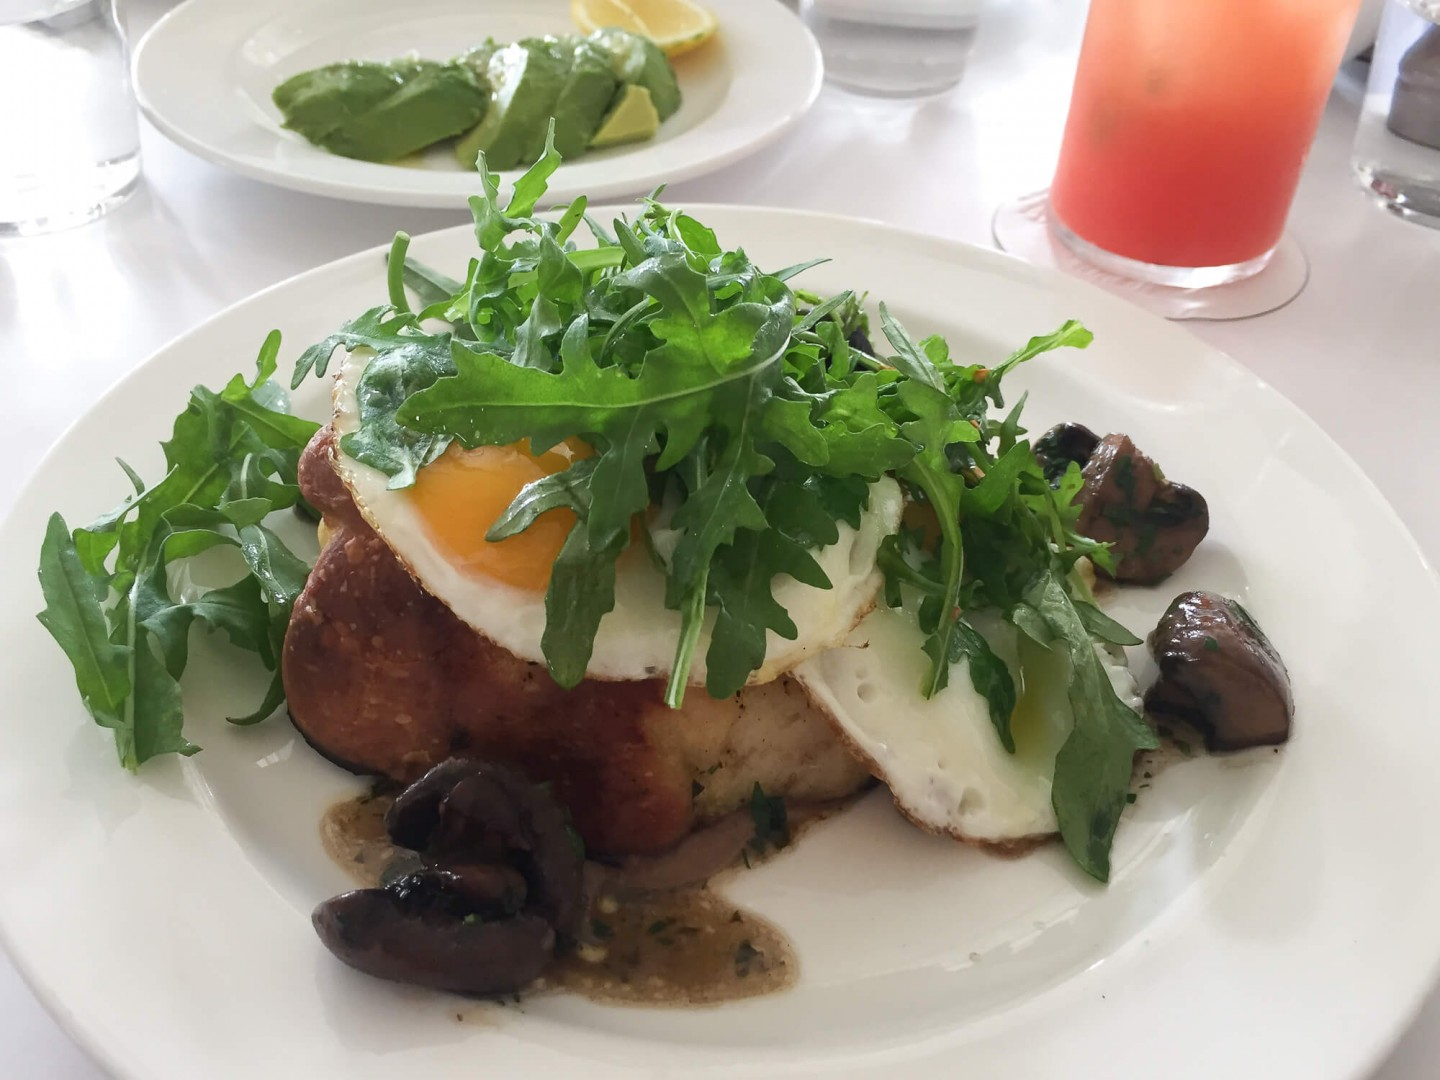 Perfect eggs and mushrooms served on toasted brioche. Bistrotheque in London is the perfect spot for beautiful brunch.